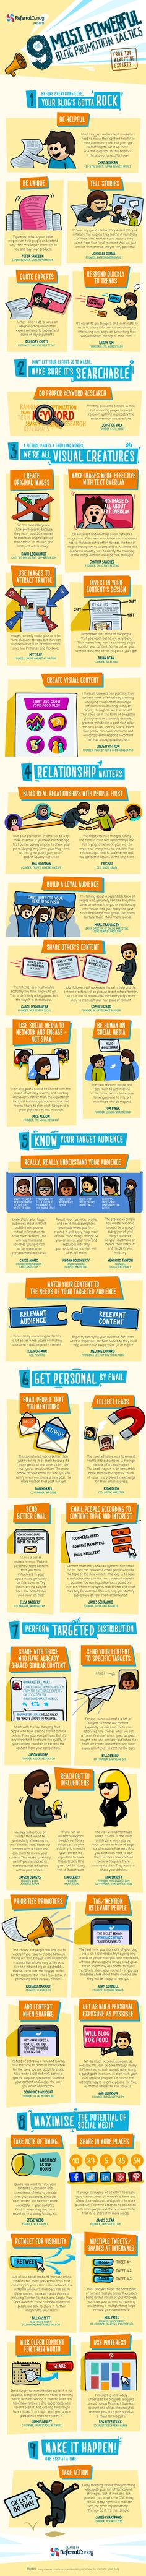 40 Powerful Blog Promotion Tips From Top #Marketing Experts - #infographic #blogging